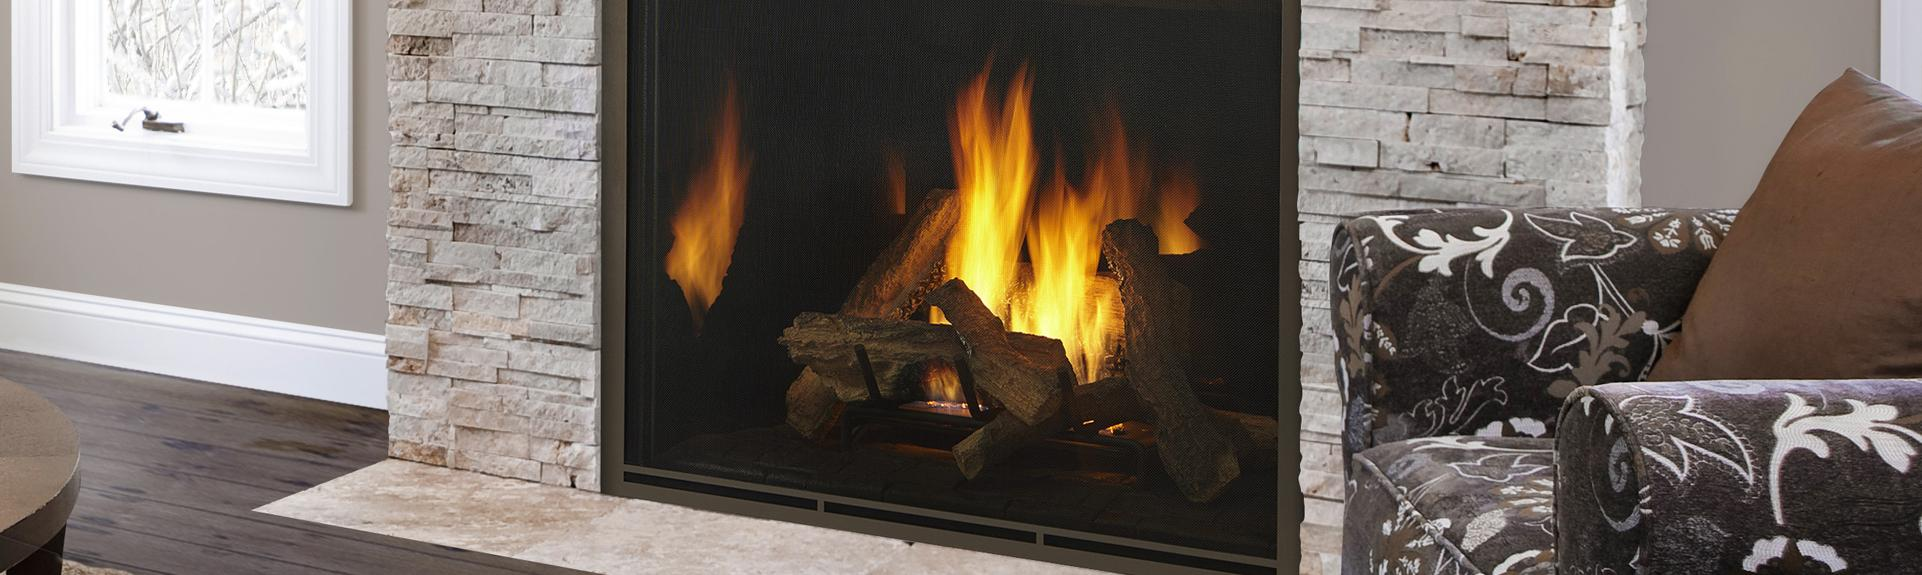 wood stove fireplace howell monmouth county nj rh woodstovenj com fireplace stores in nwa fireplace stores in nashville